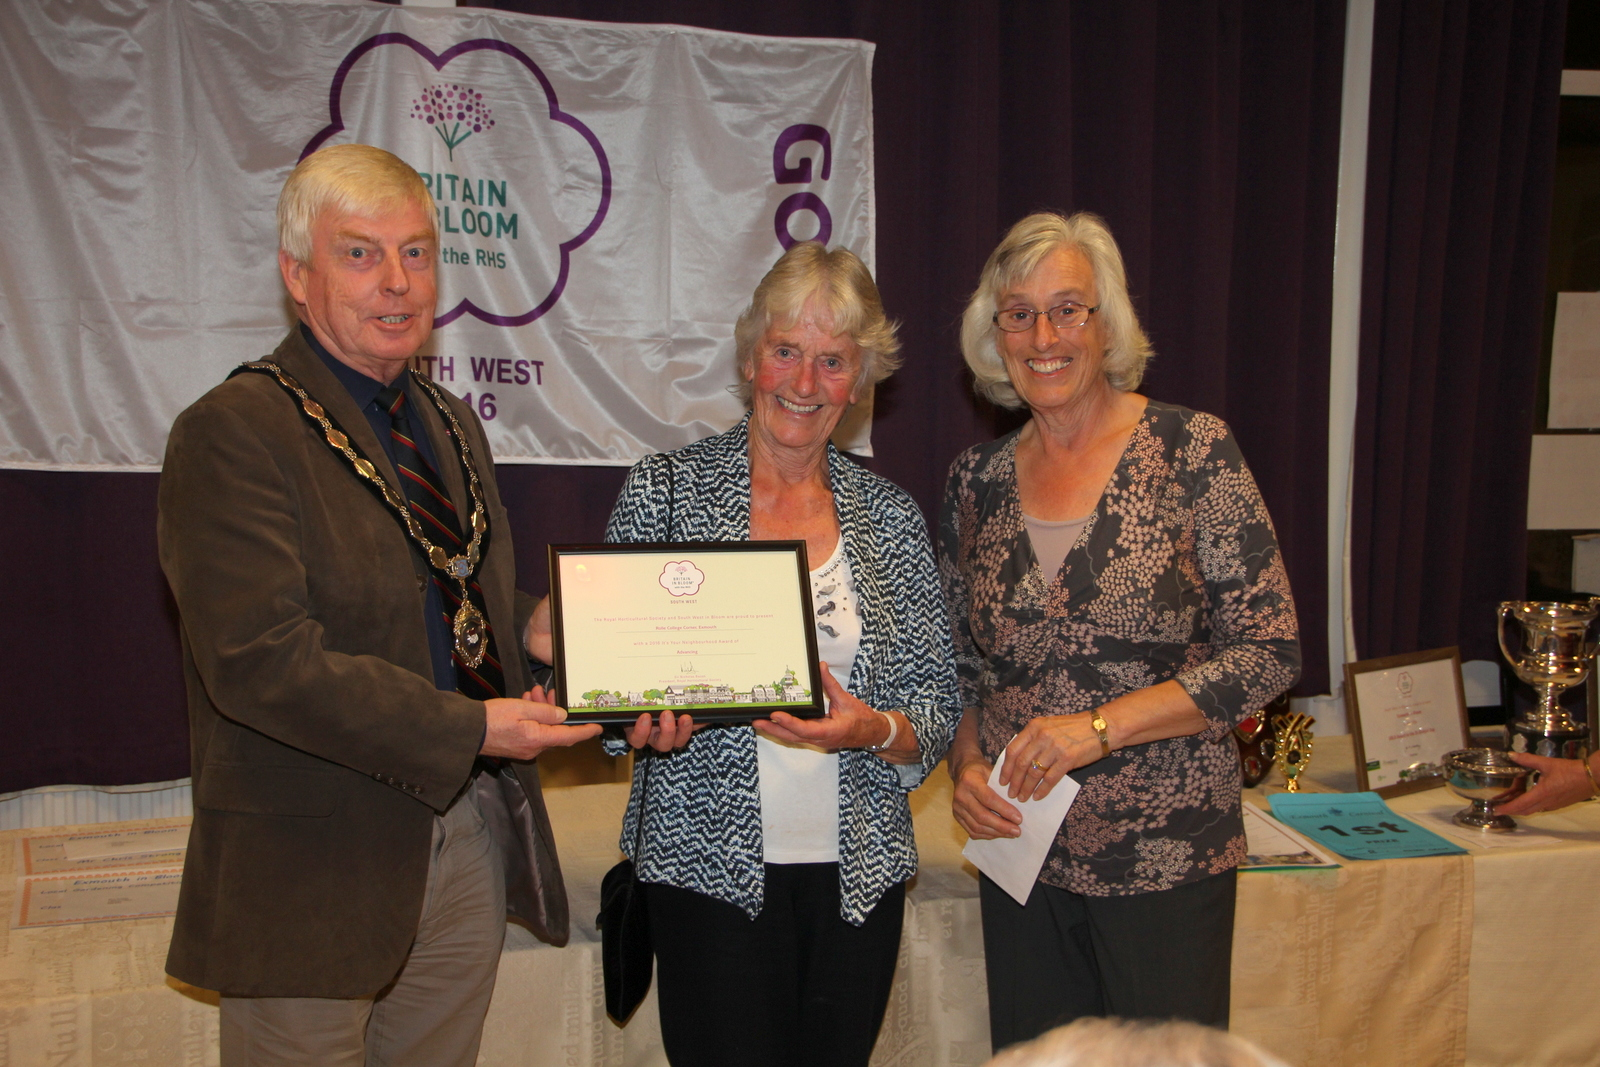 Jenny Wilmott & Elaine Lewis with 'advancing' Neighbourhood award for Rolle College corner